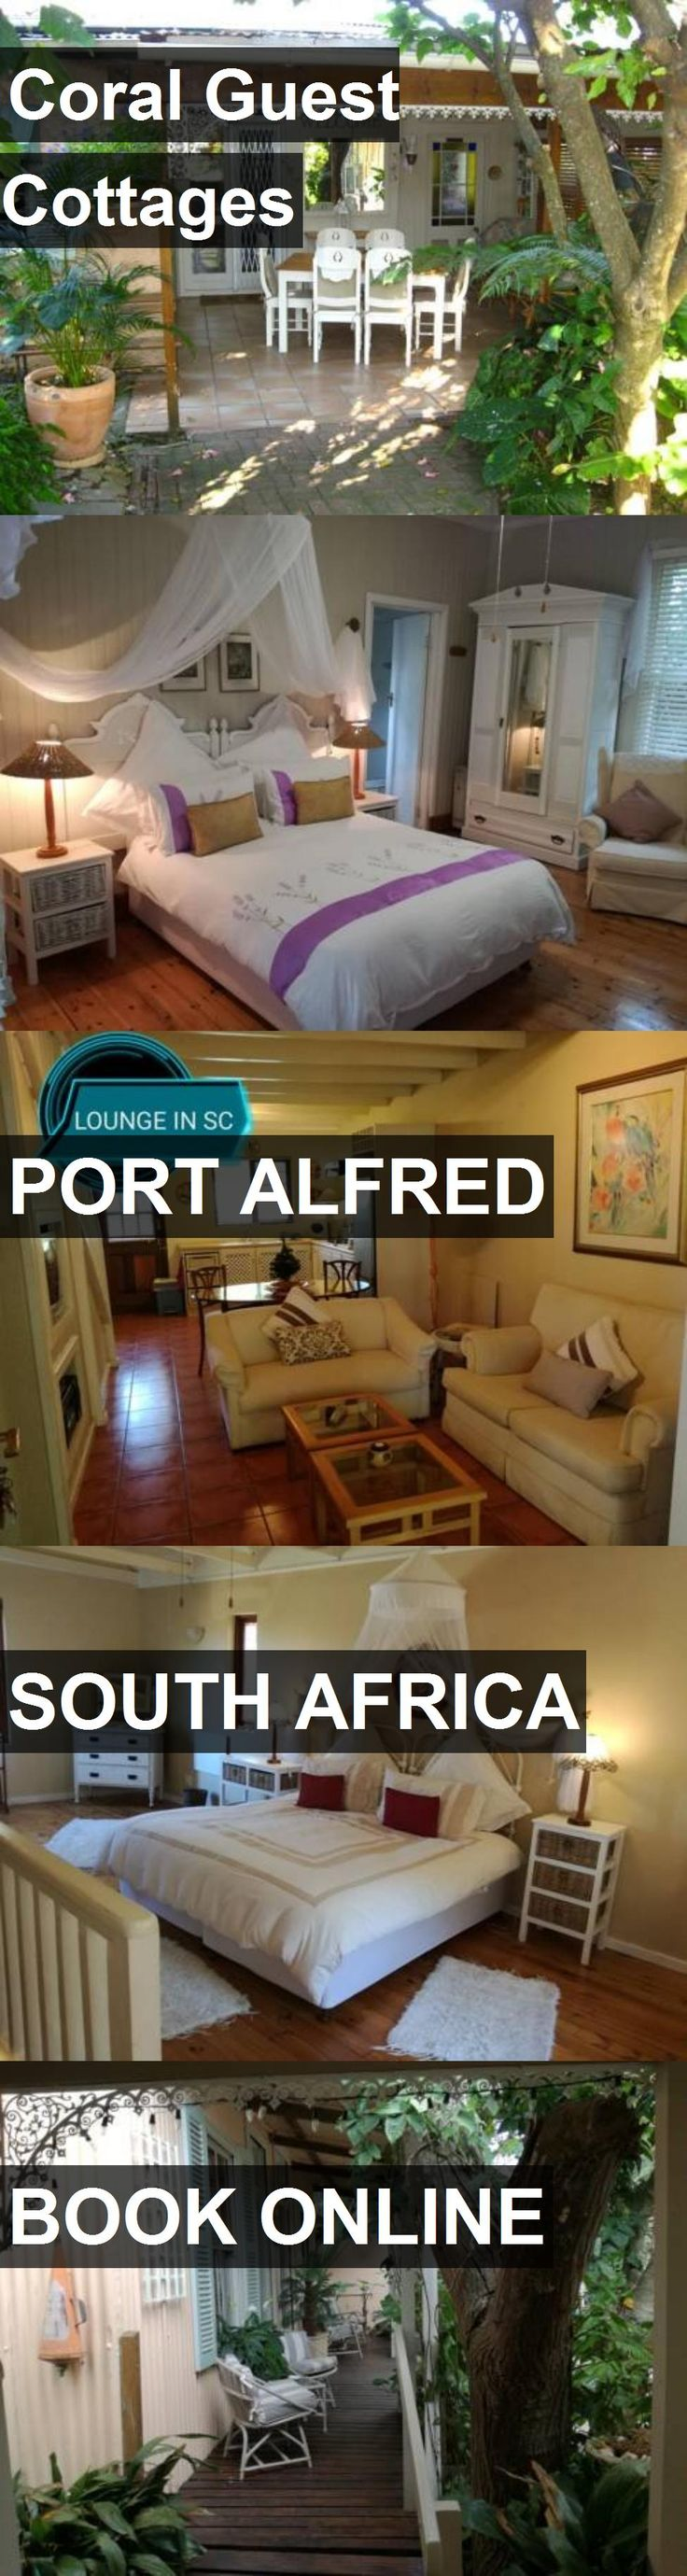 Hotel Coral Guest Cottages in Port Alfred, South Africa. For more information, photos, reviews and best prices please follow the link. #SouthAfrica #PortAlfred #travel #vacation #hotel